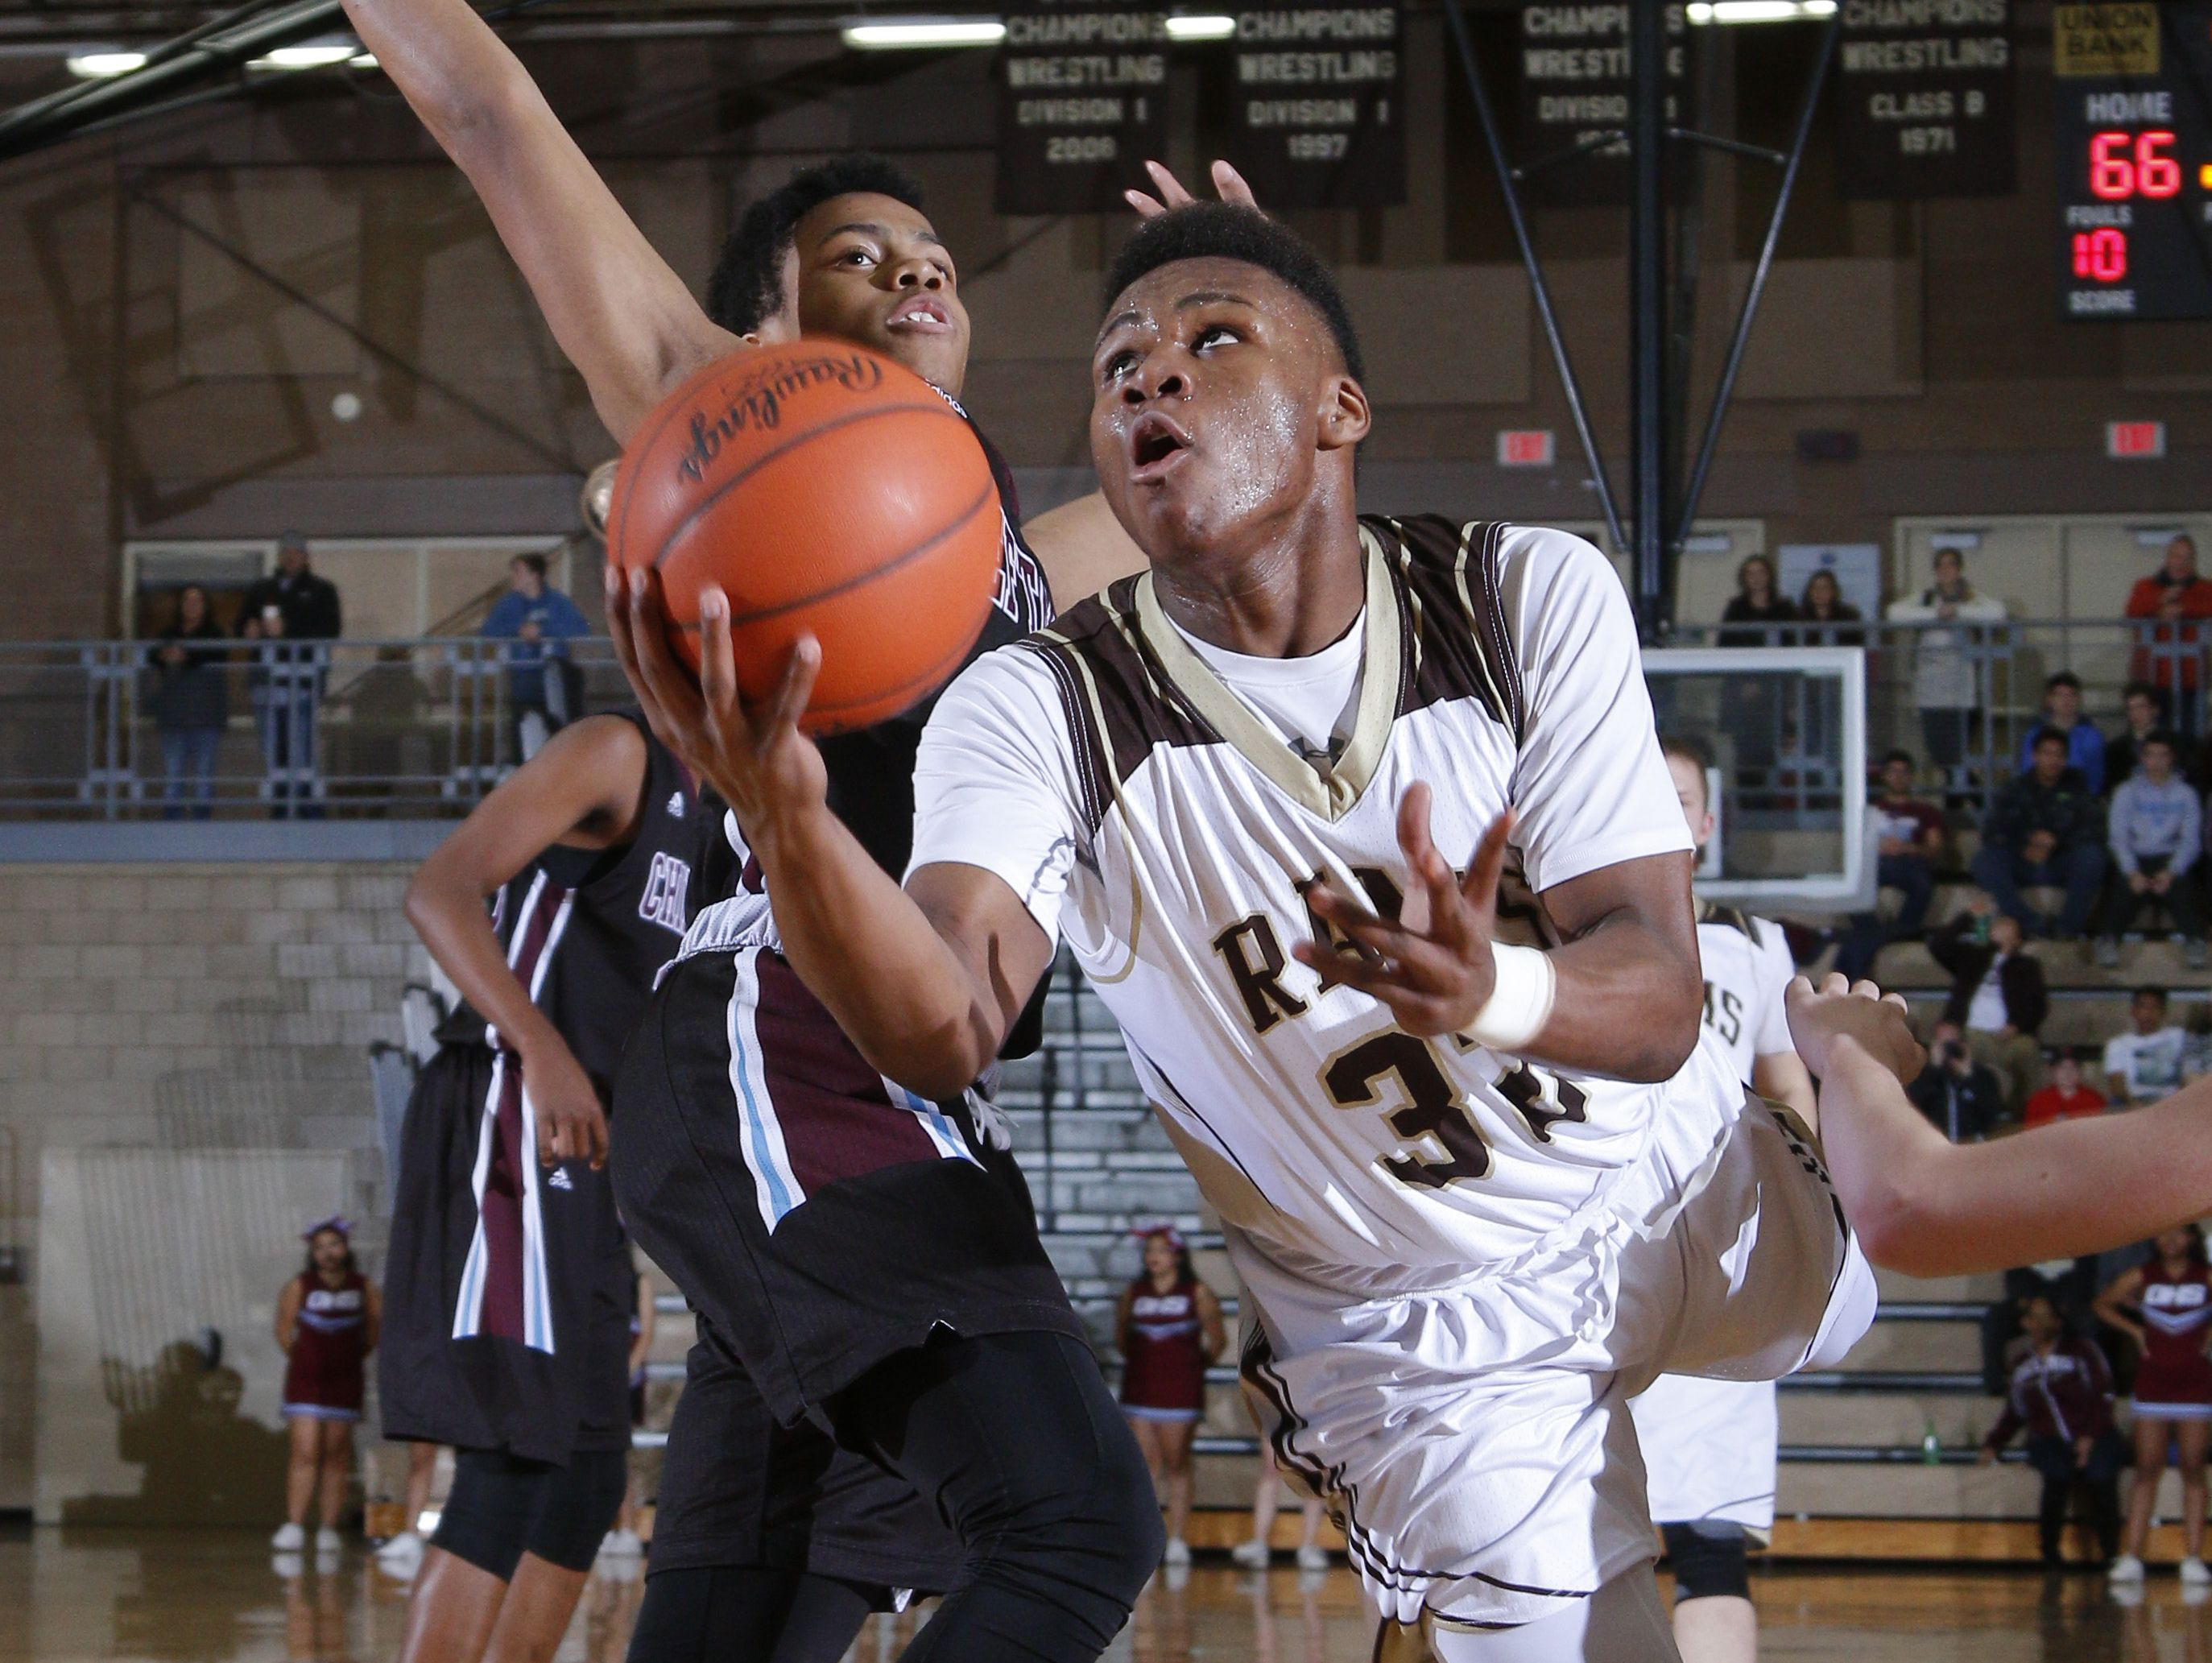 Holt's Ar'tavious Kibng, right, puts up a layup against Okemos' Noah Pruitt Friday, Feb. 10, 2017, in Holt, Mich. Holt won 94-86 in overtime.